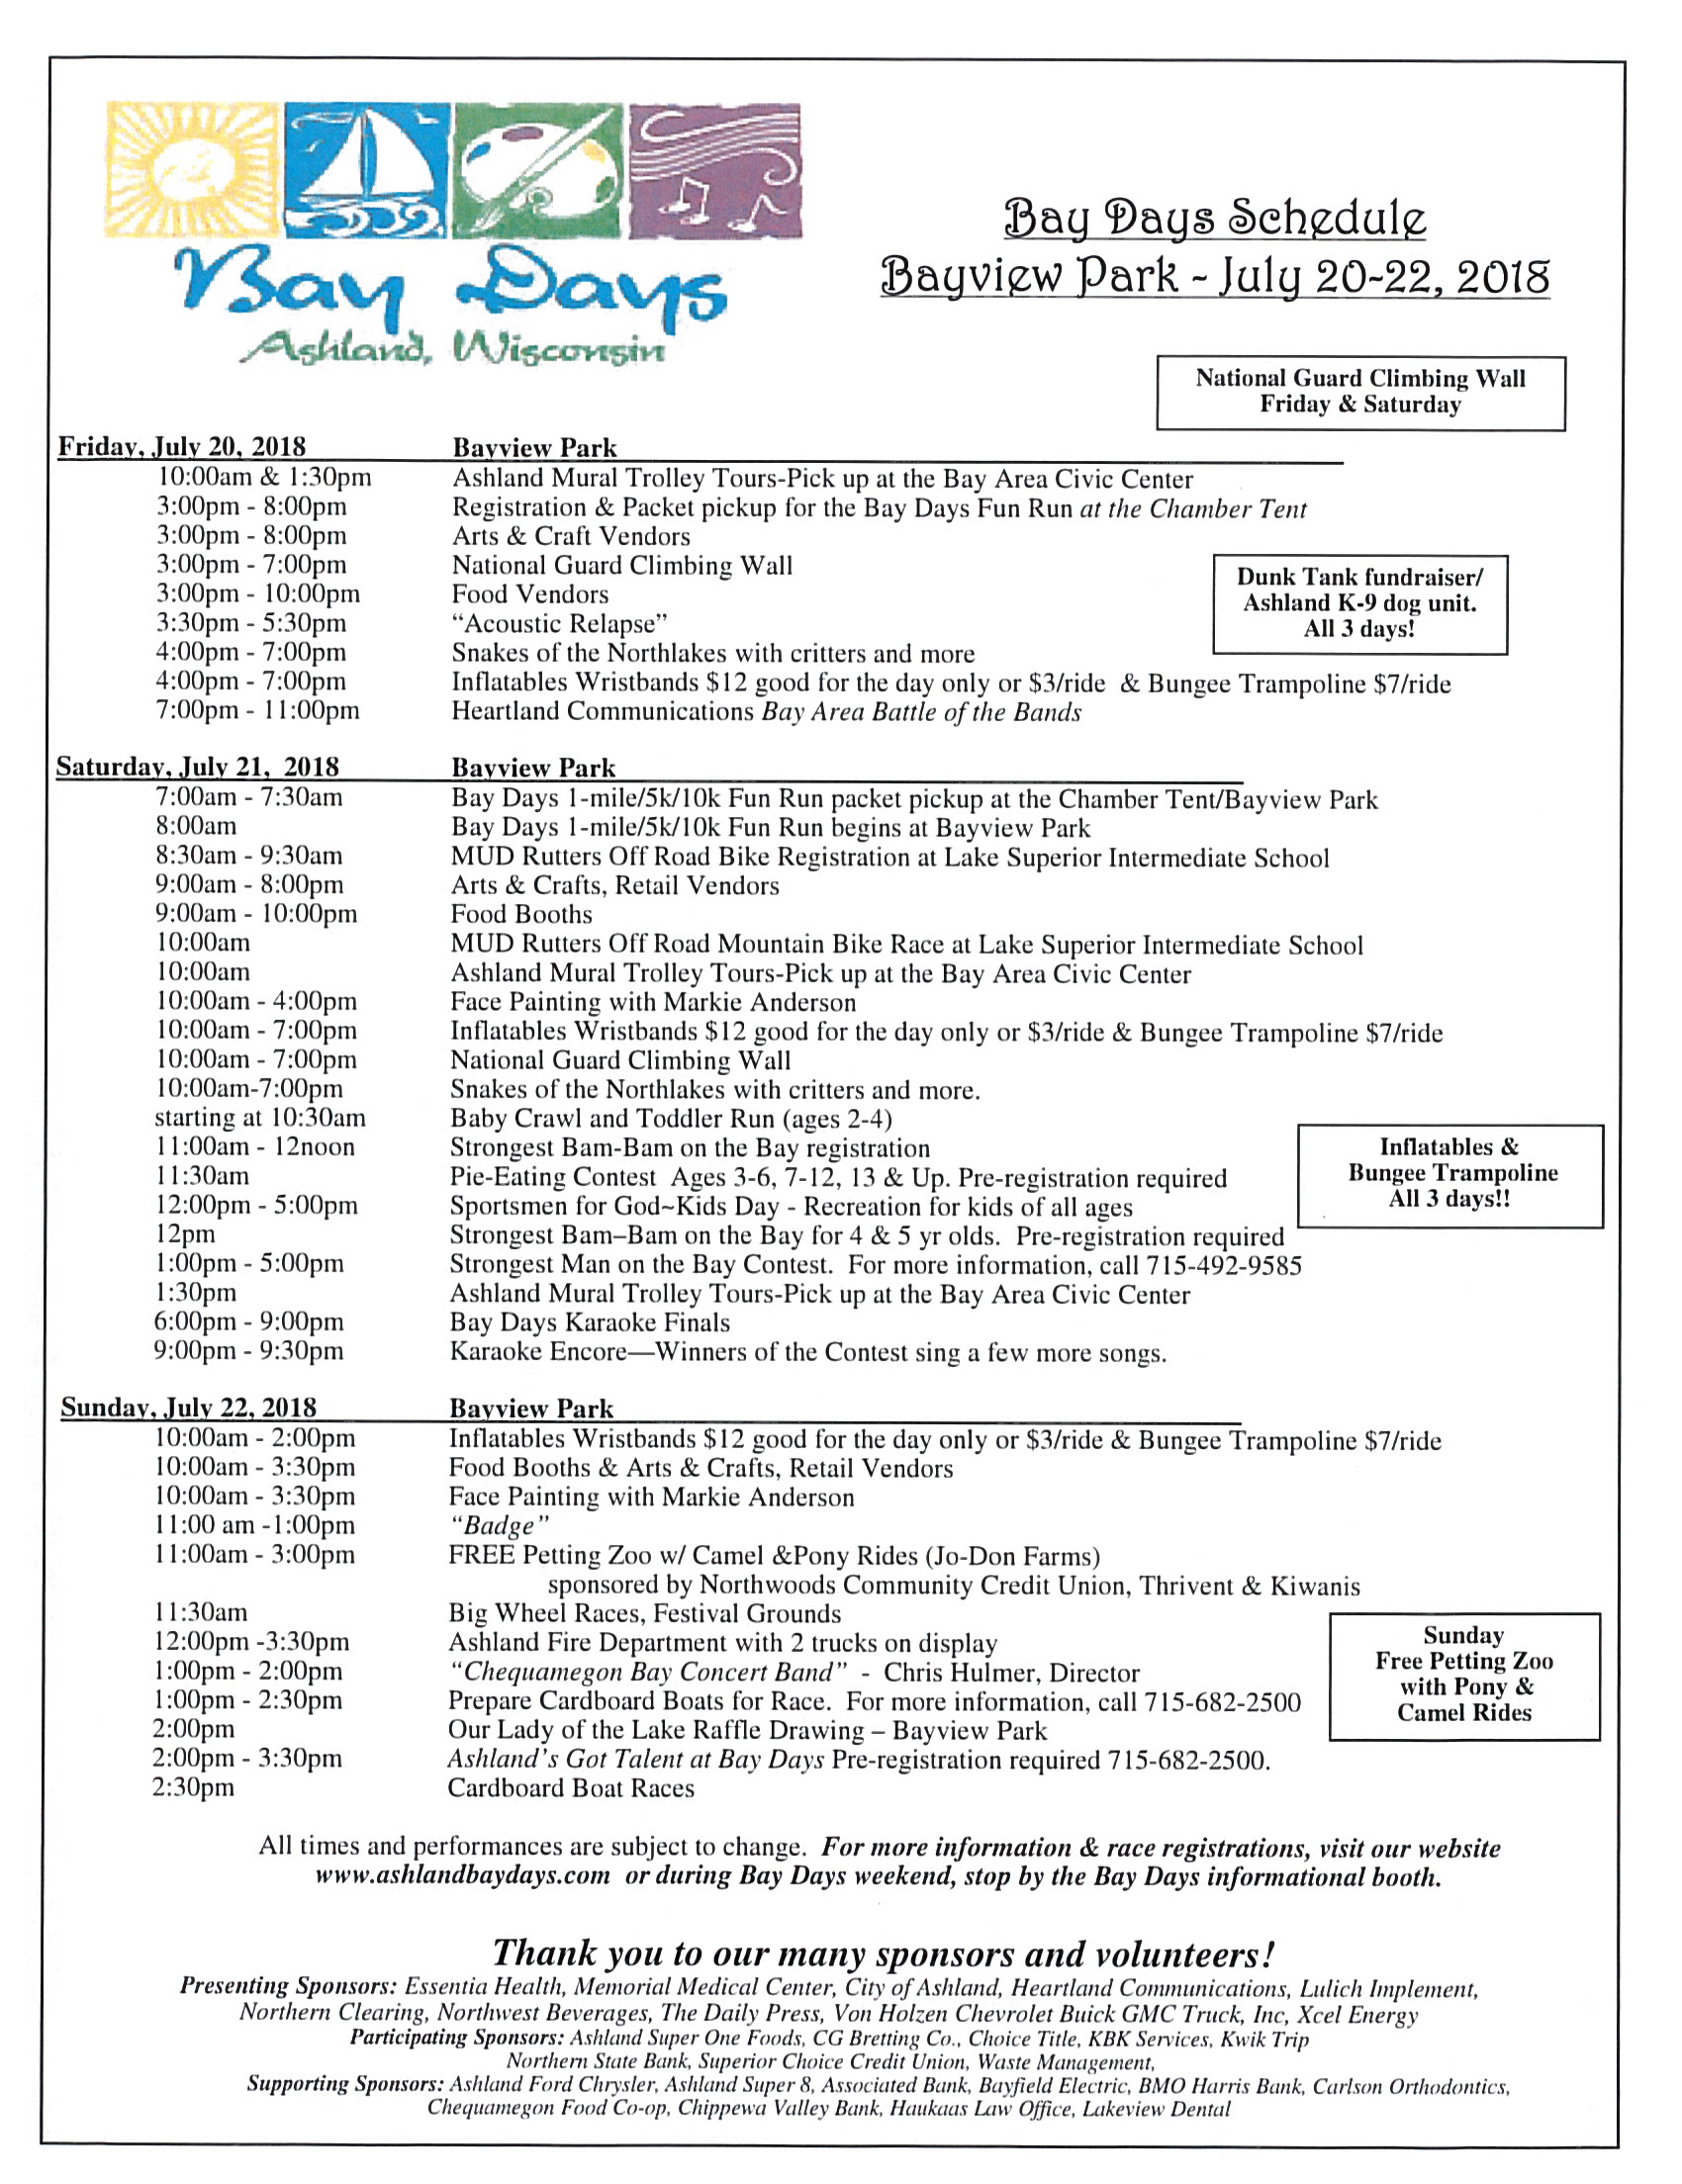 ashland bay days 2018 schedule of events